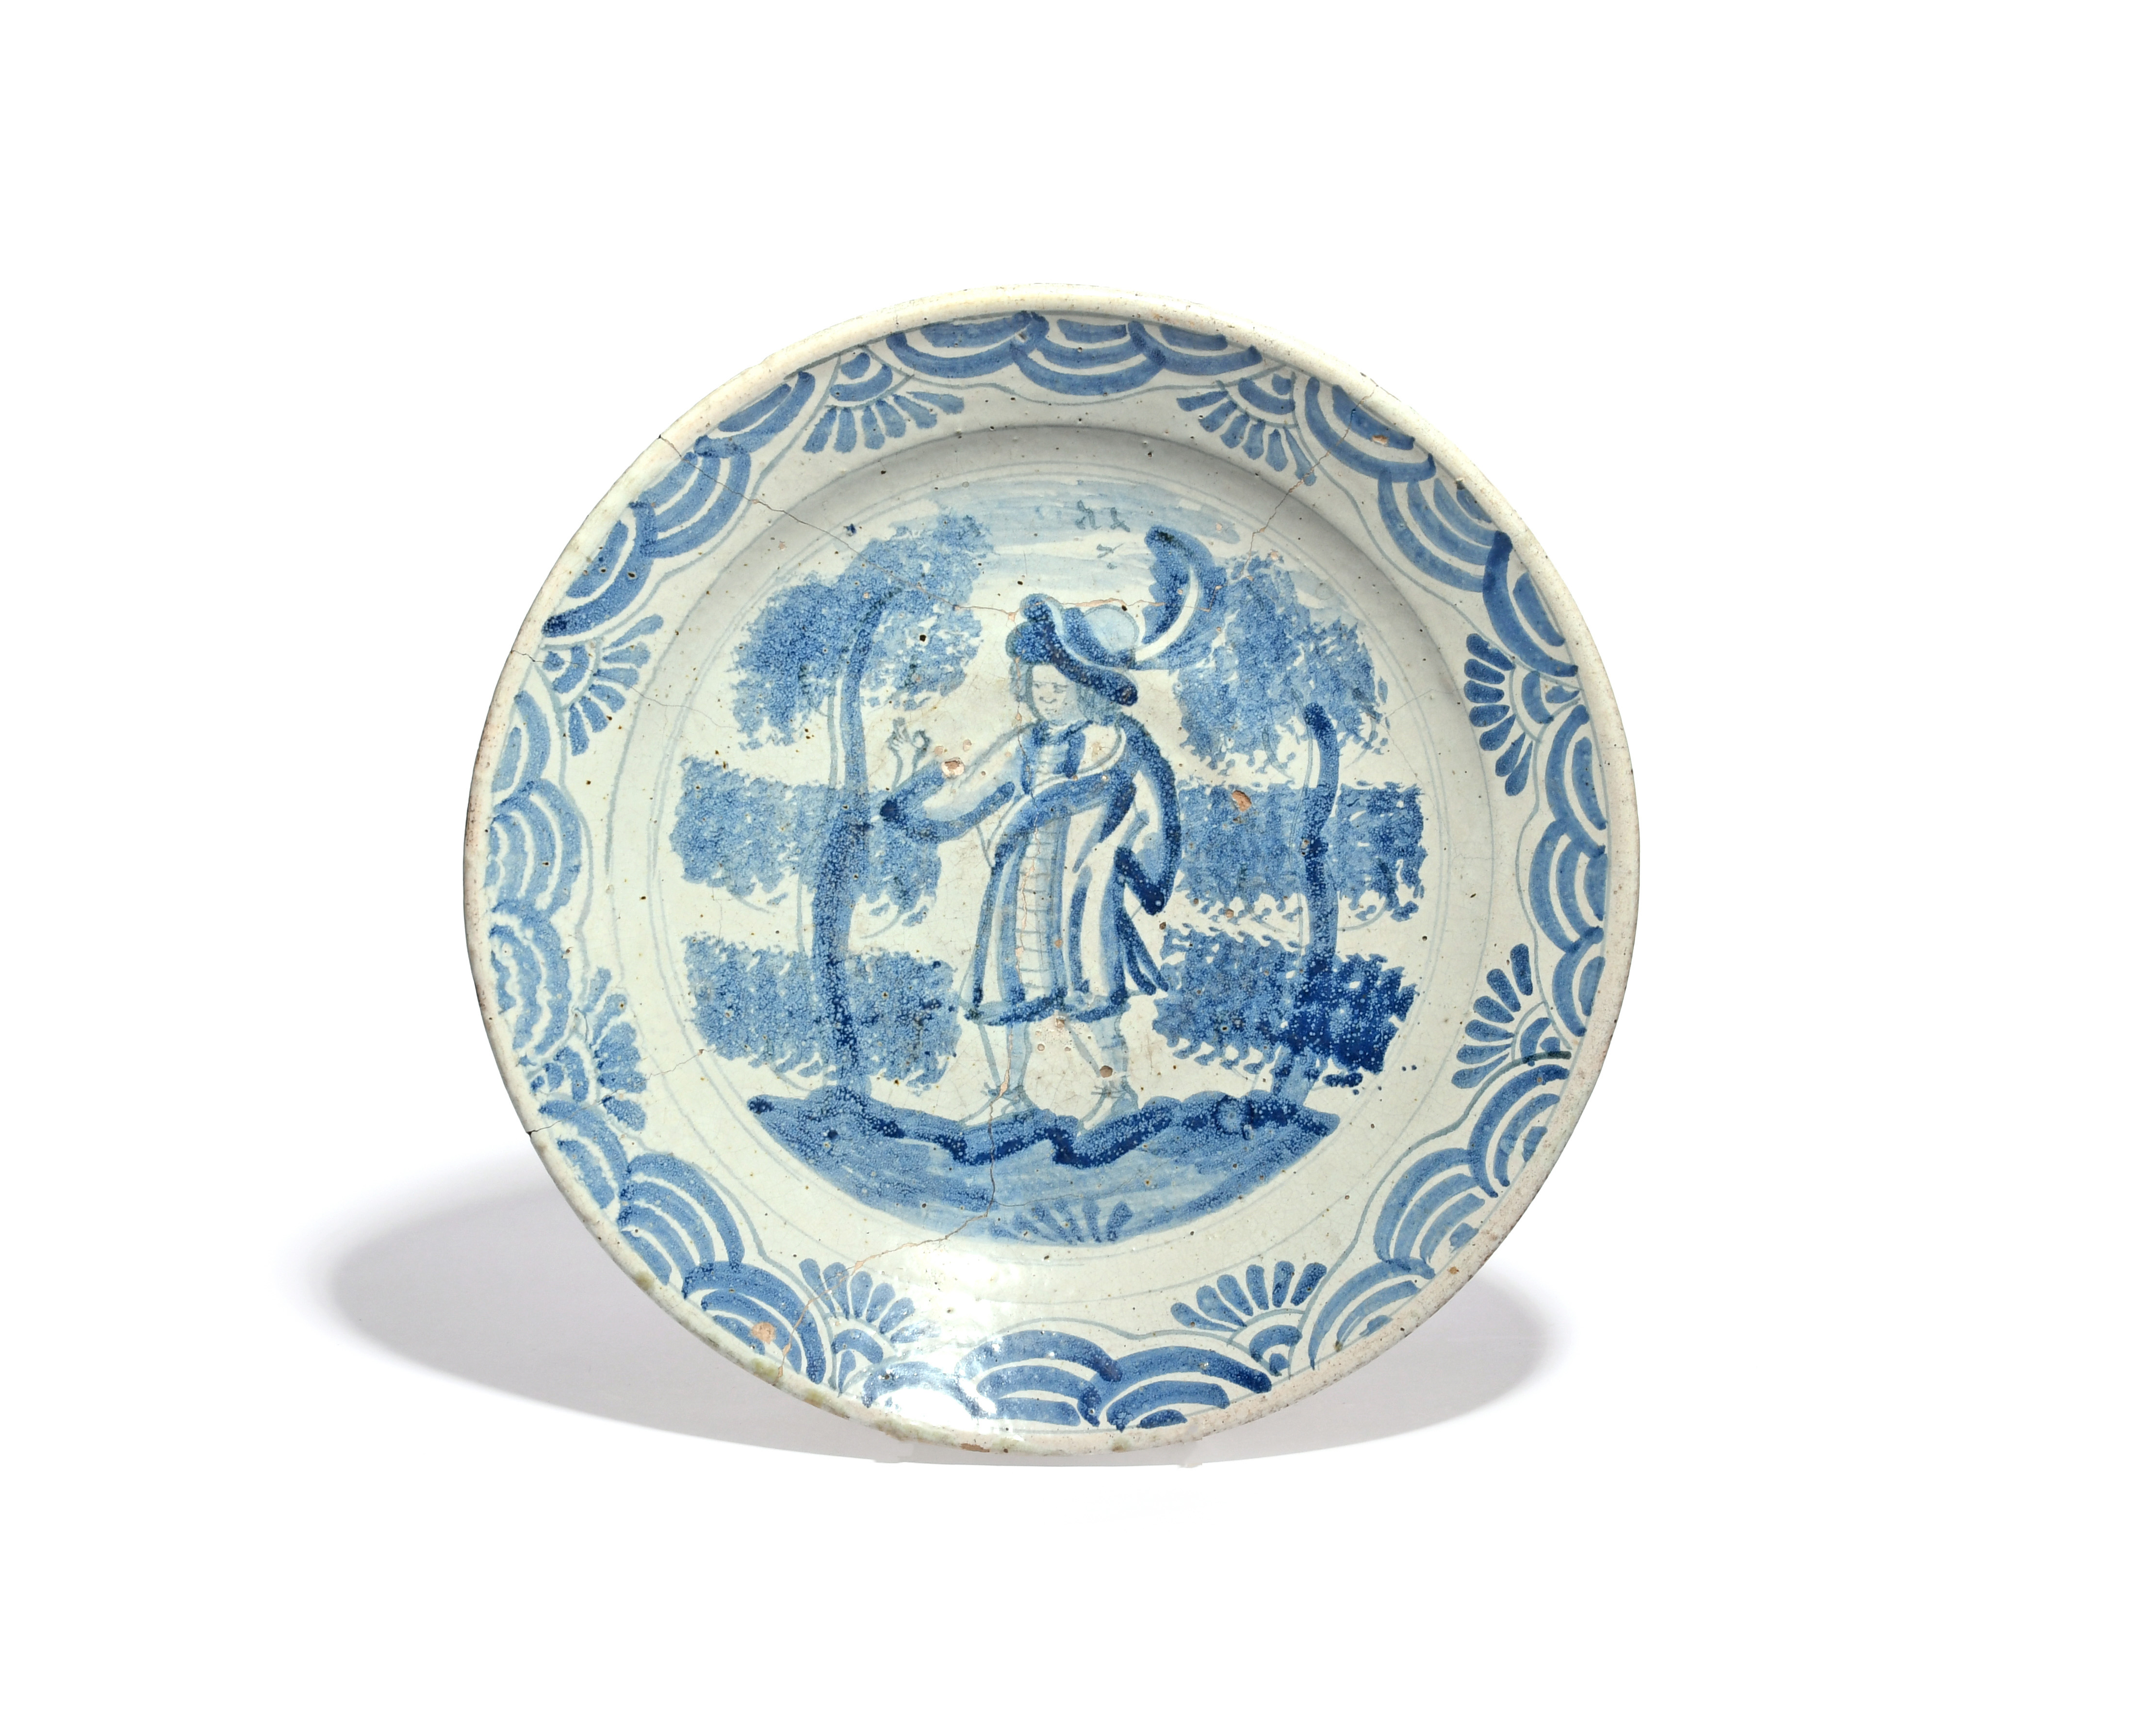 An early Brislington delftware charger c.1690, painted in blue with a European gentleman wearing a